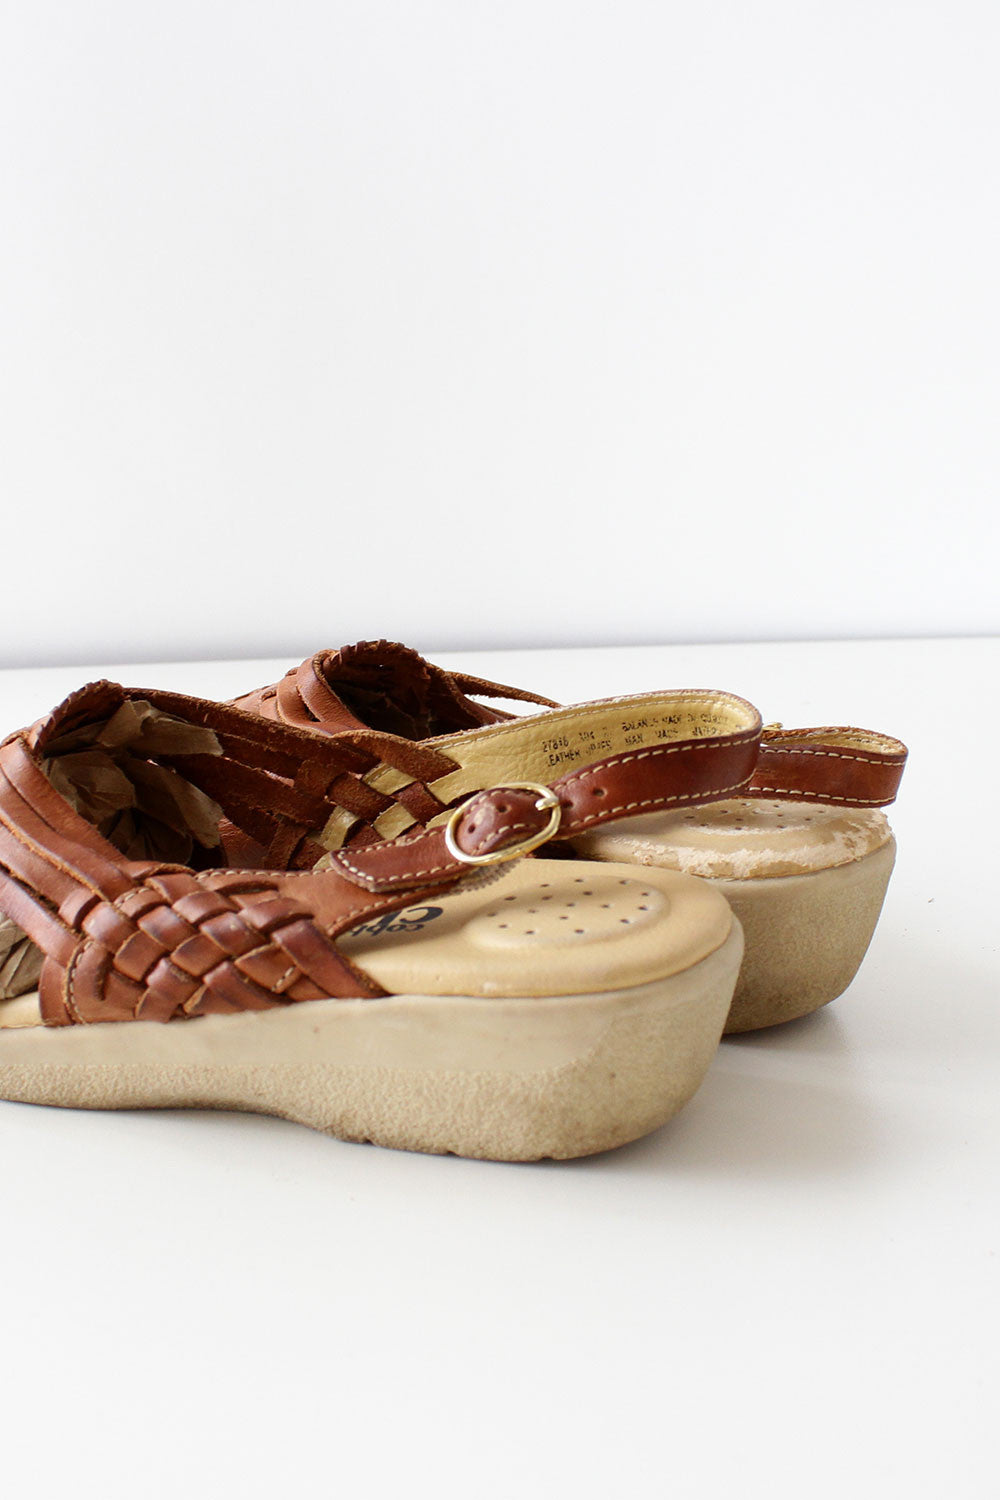 Cobbie Huarache Wedge Sandals 8